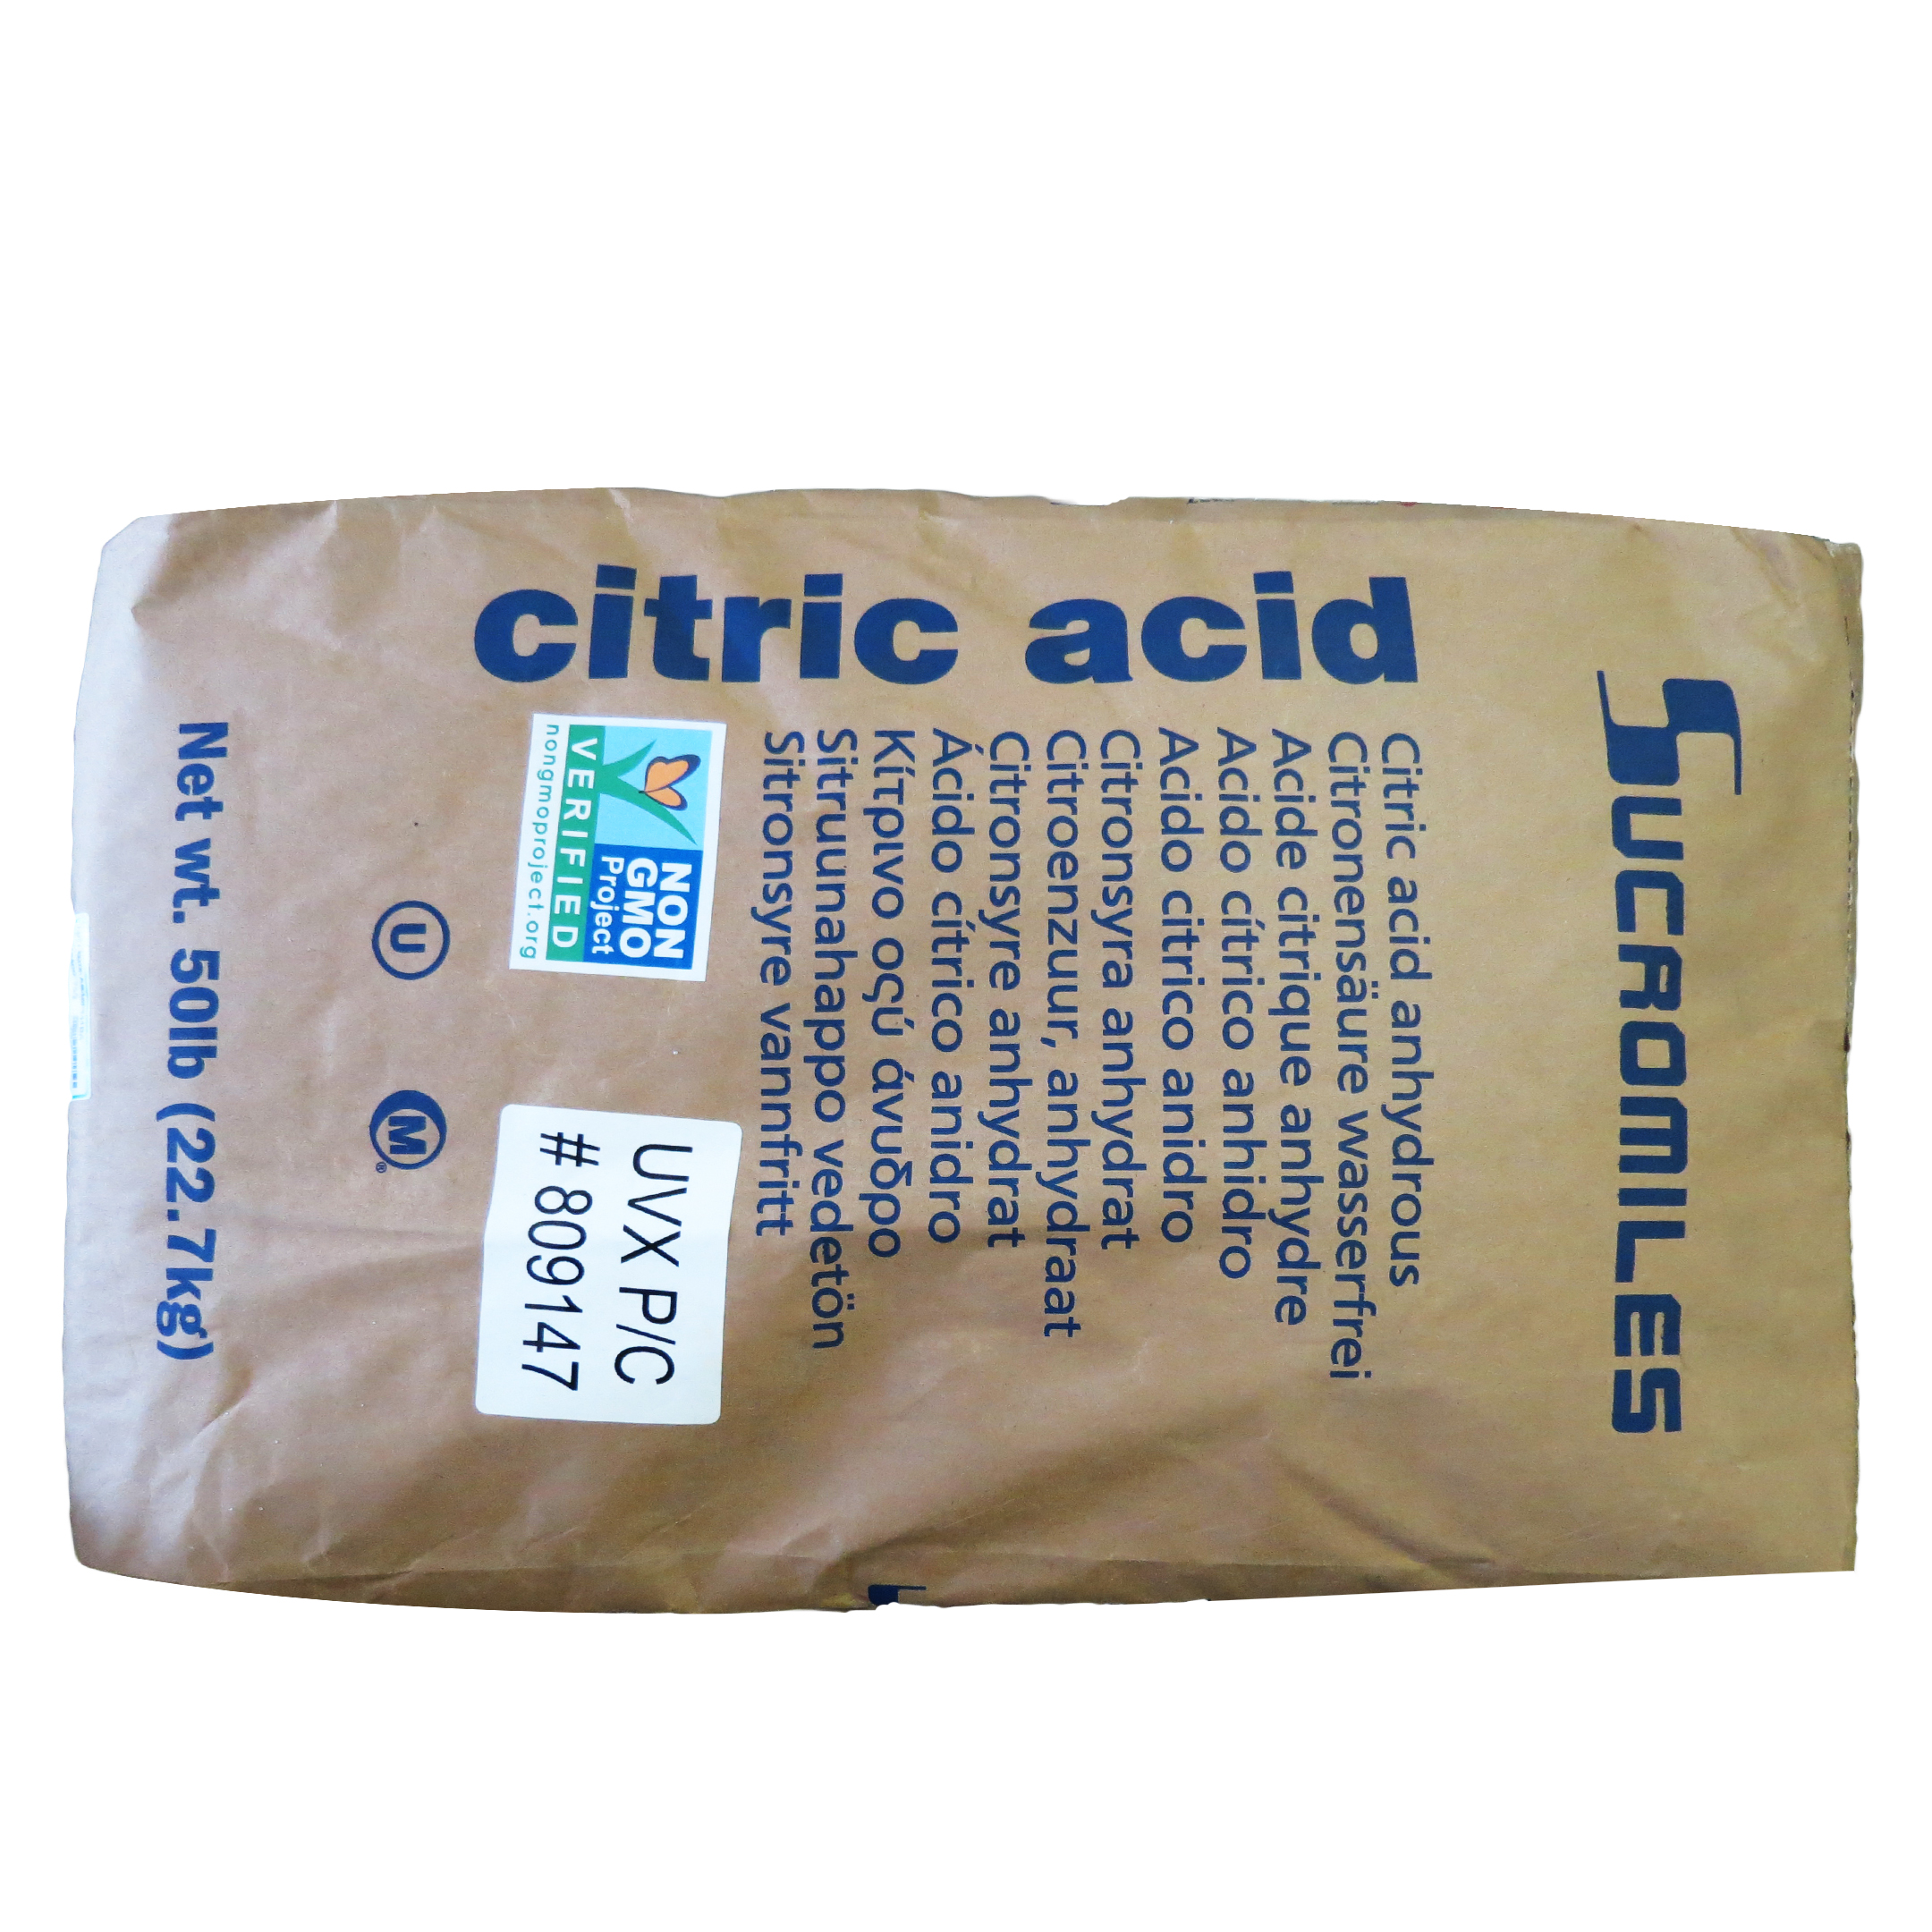 50 lb Bag of Citric Acid